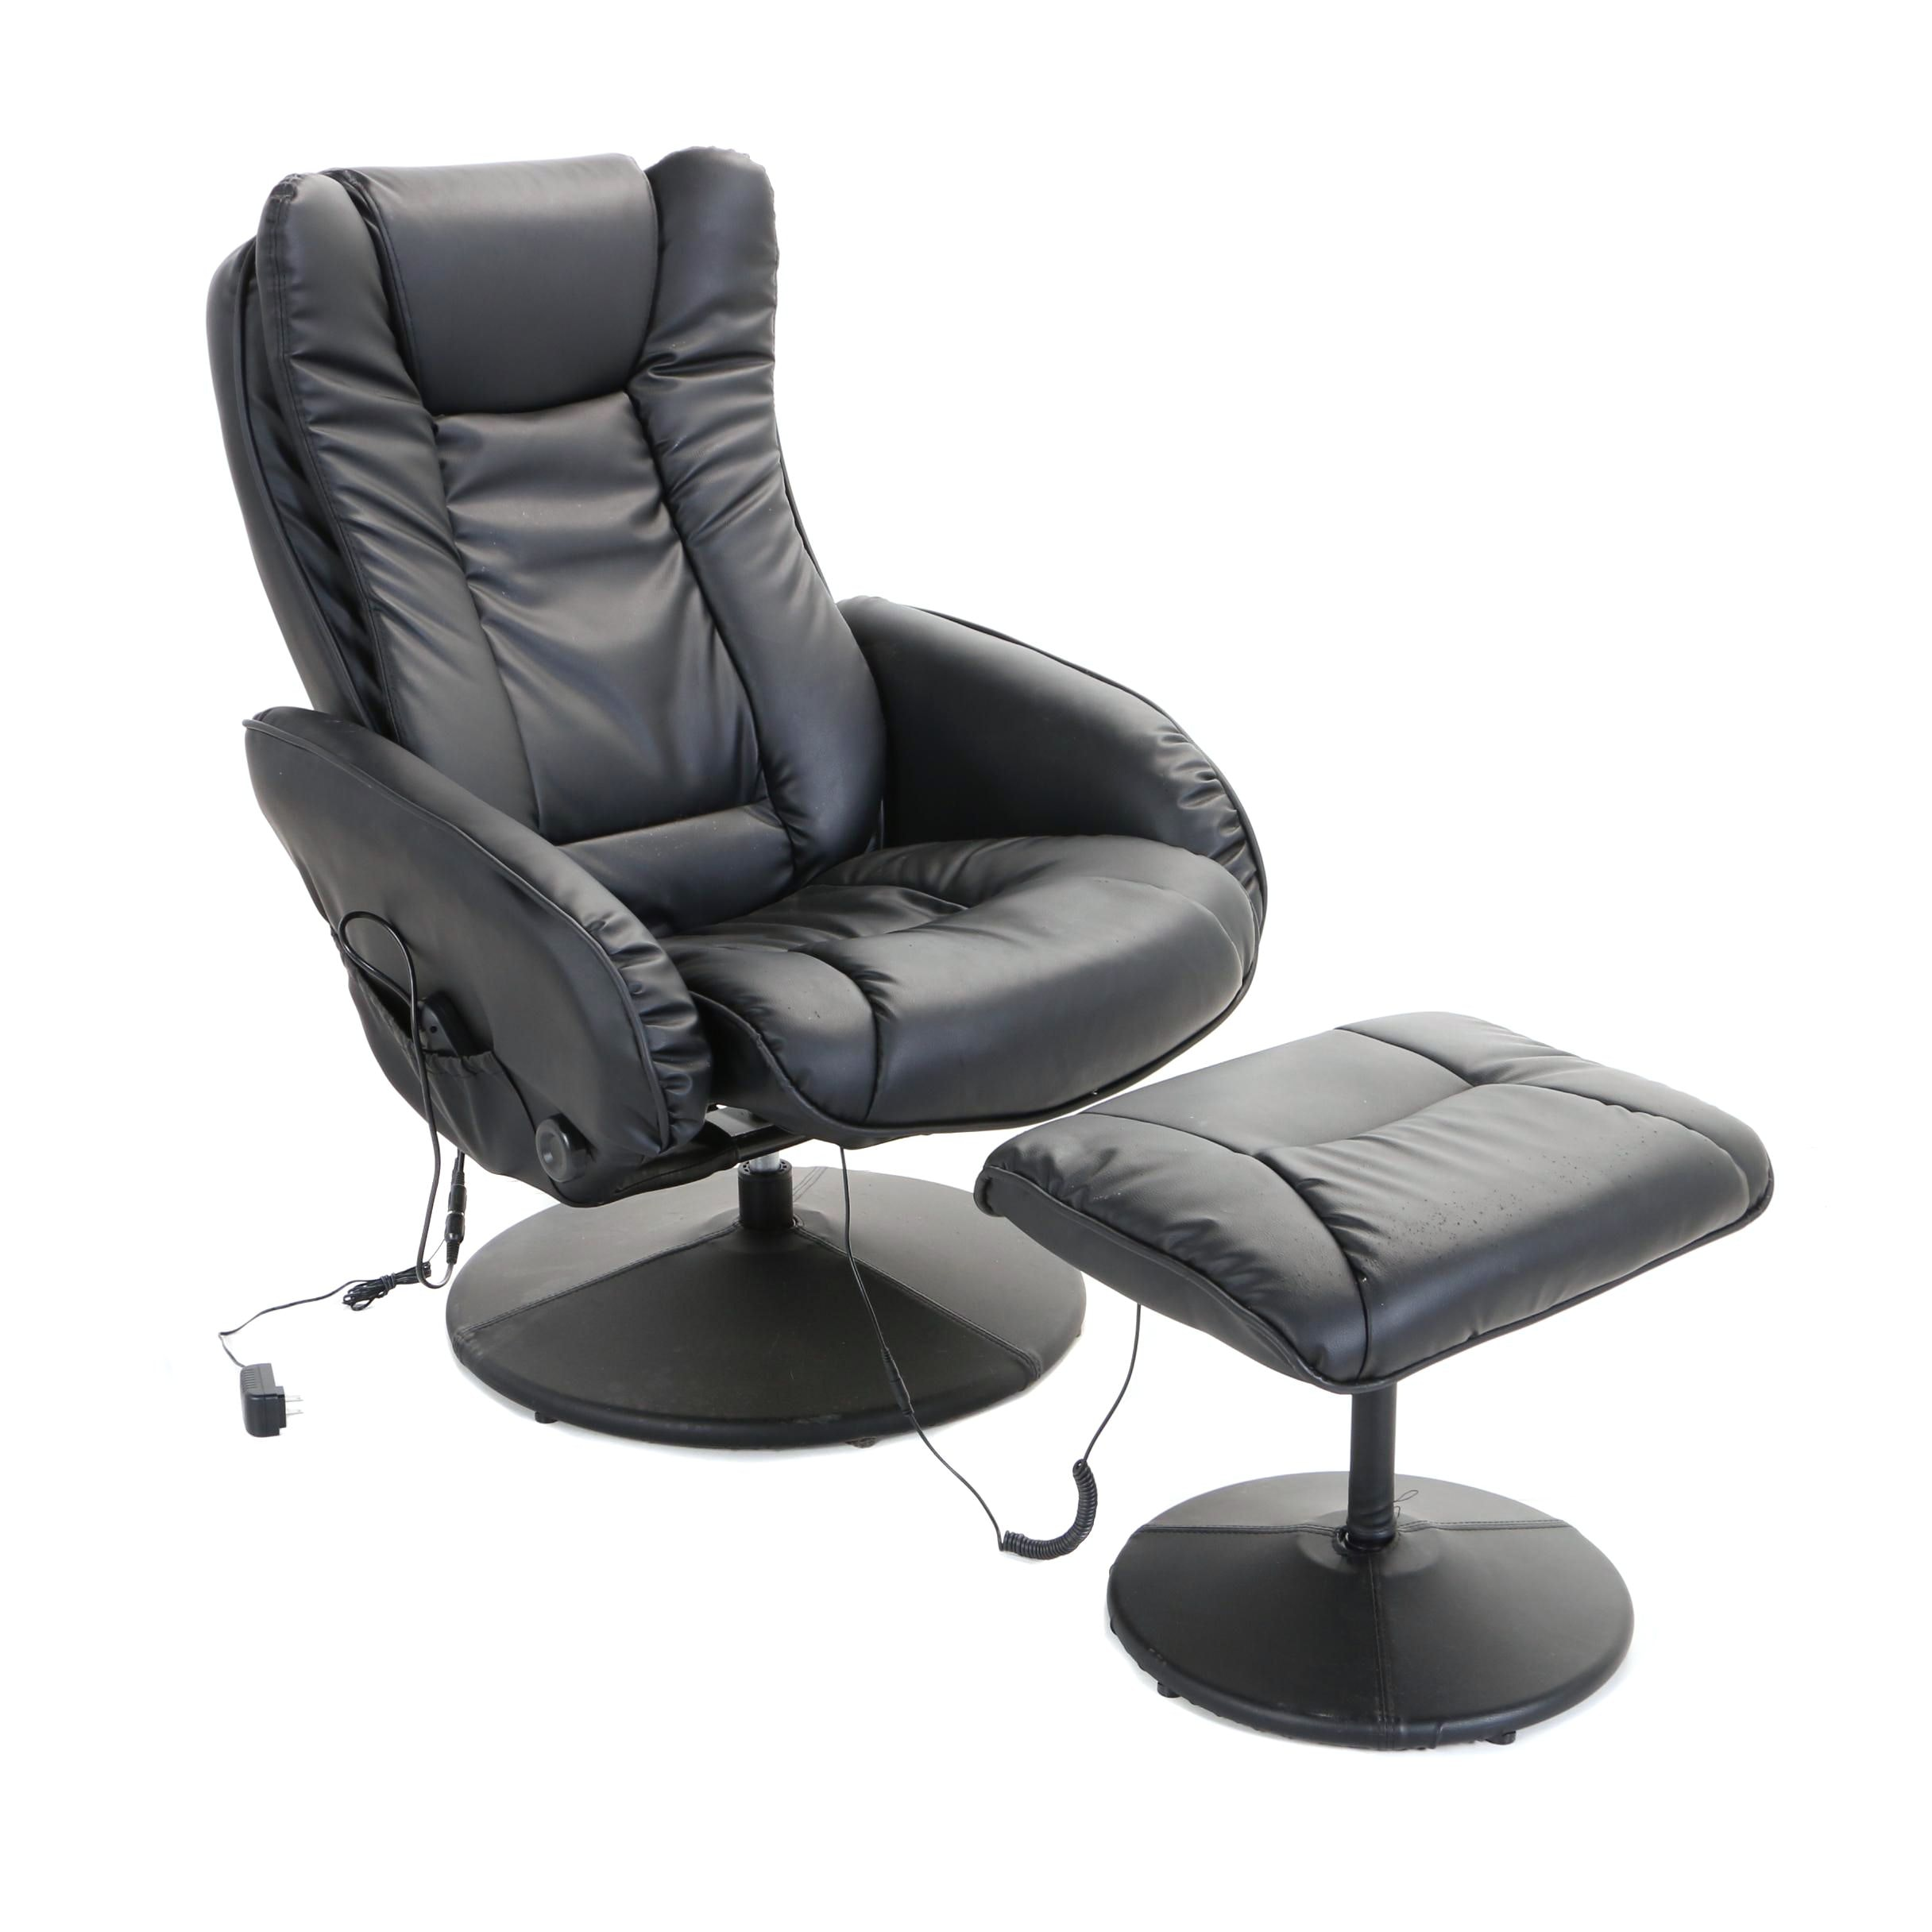 Contemporary Black Faux-Leather Vibrating Lounge Chair and Ottoman